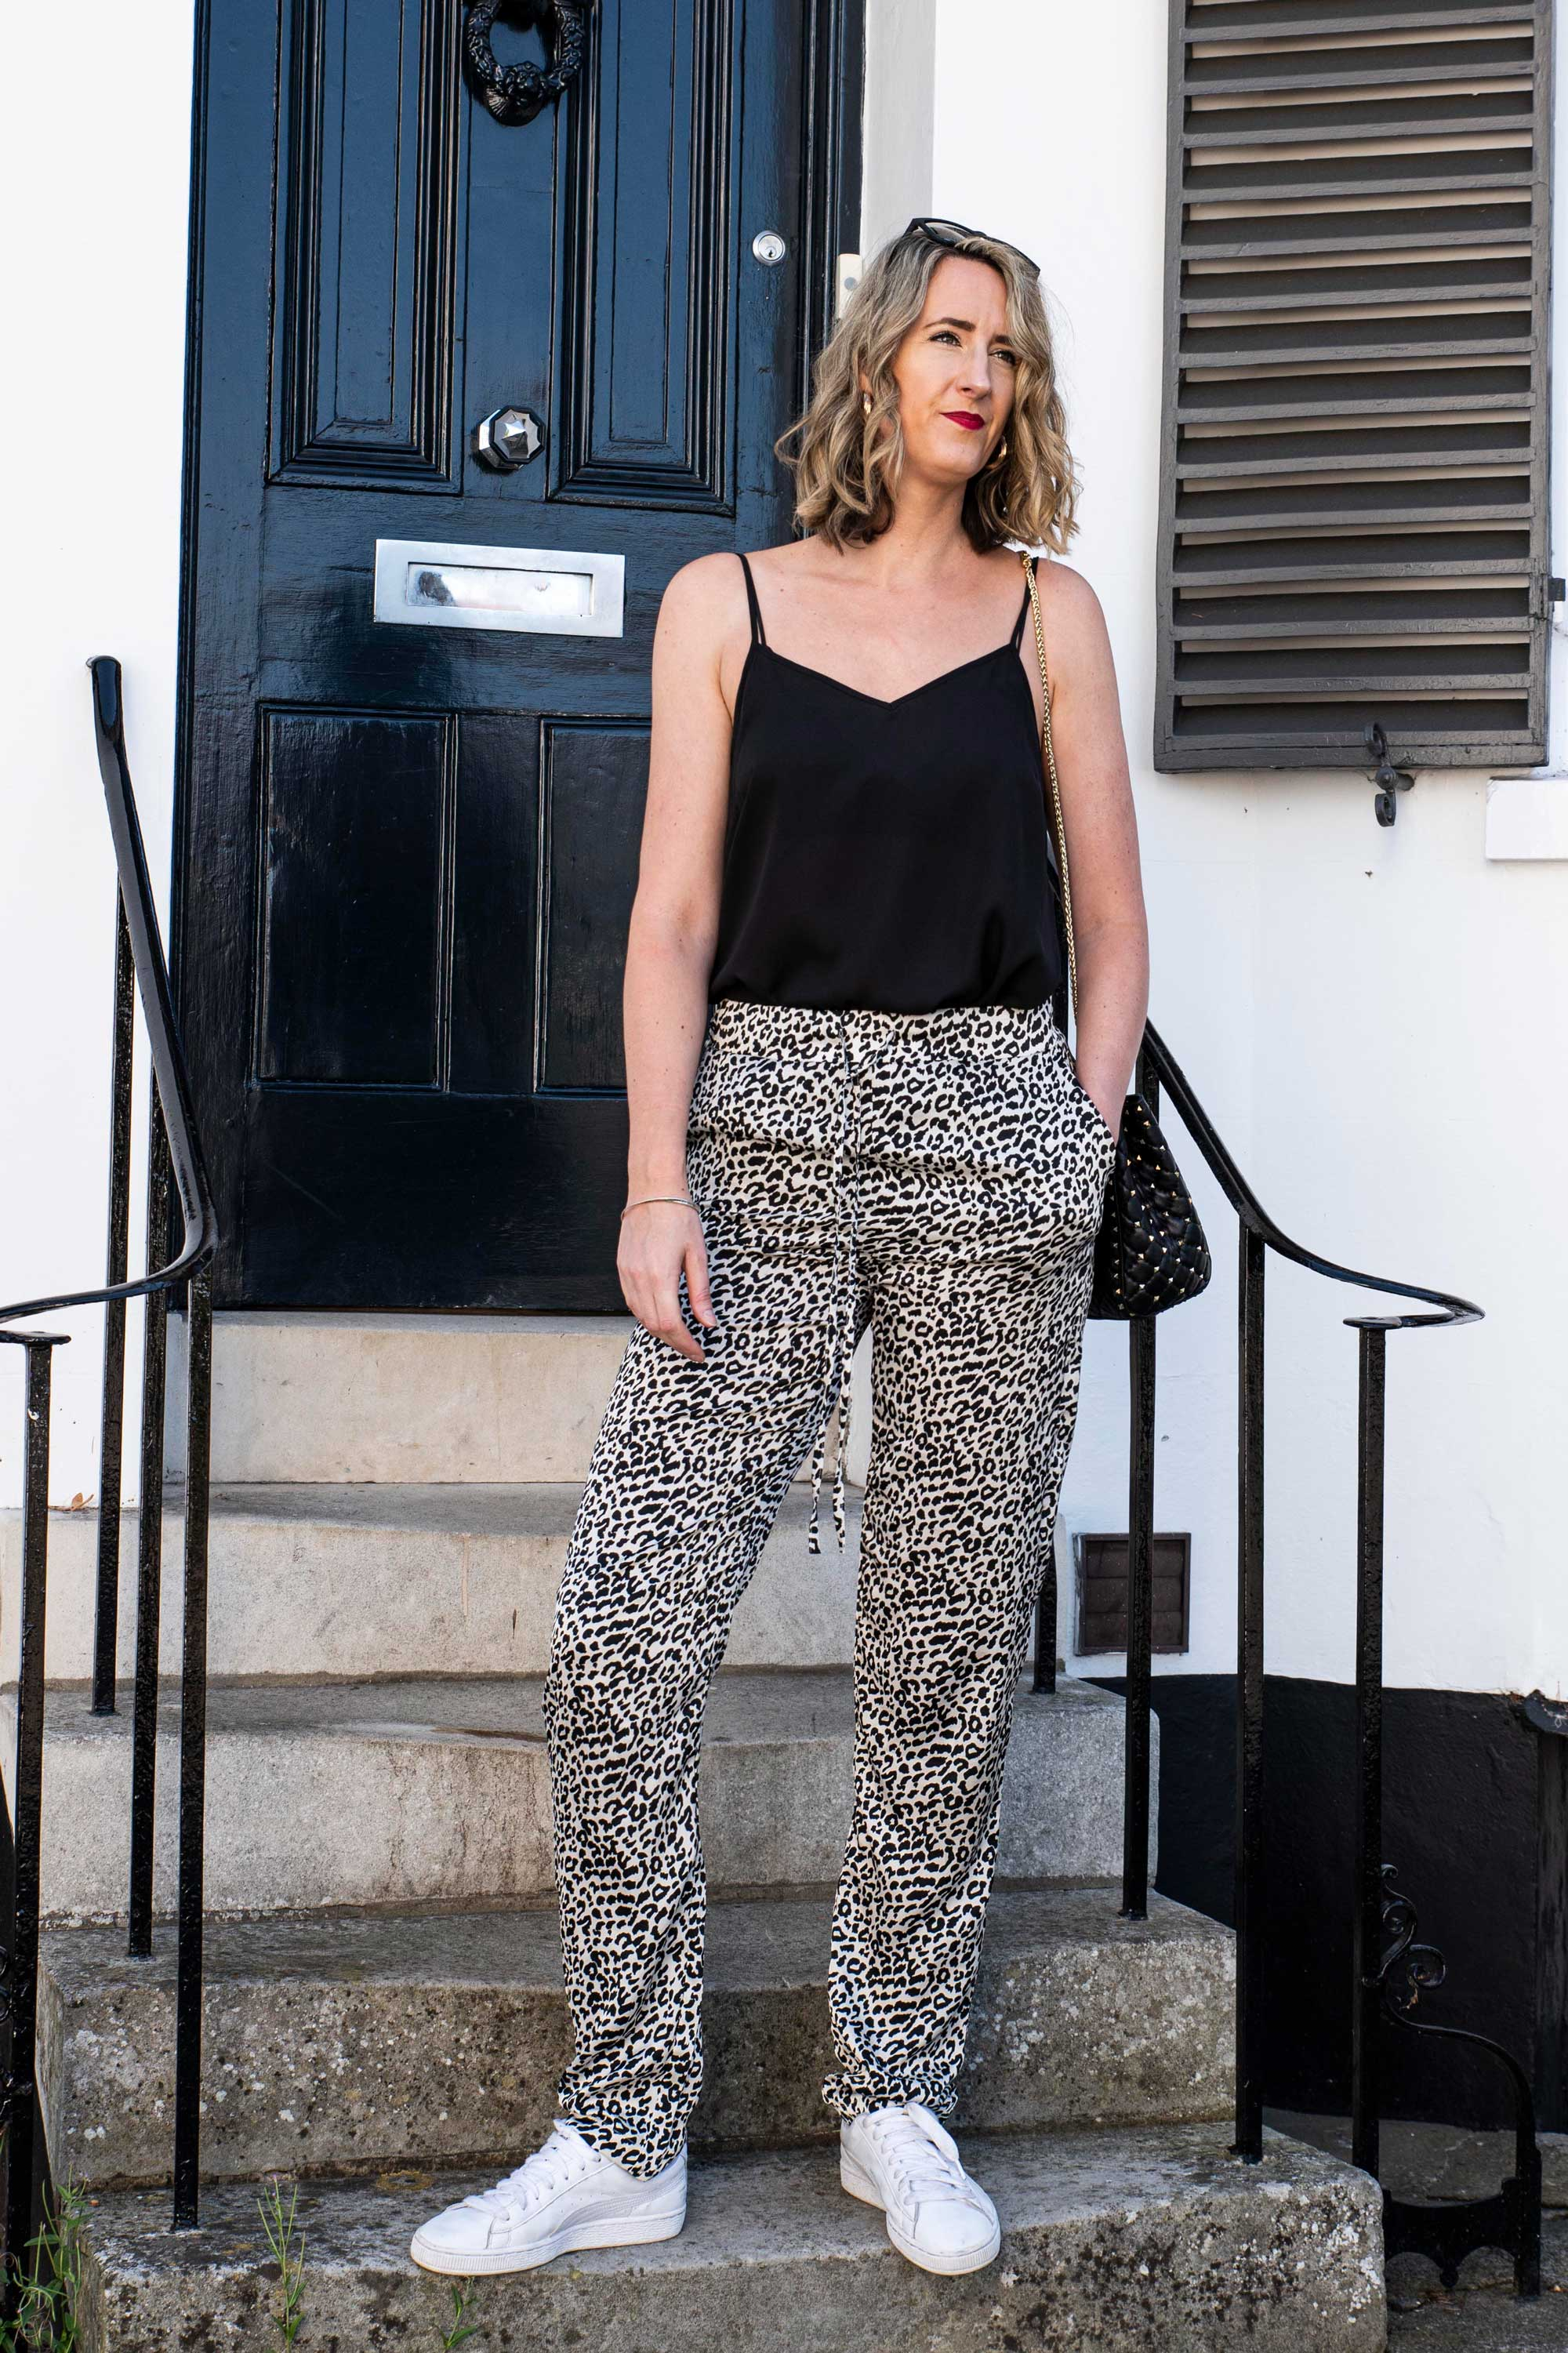 long-black-white-leopard-trousers-silk-like-fabric-daywear-look